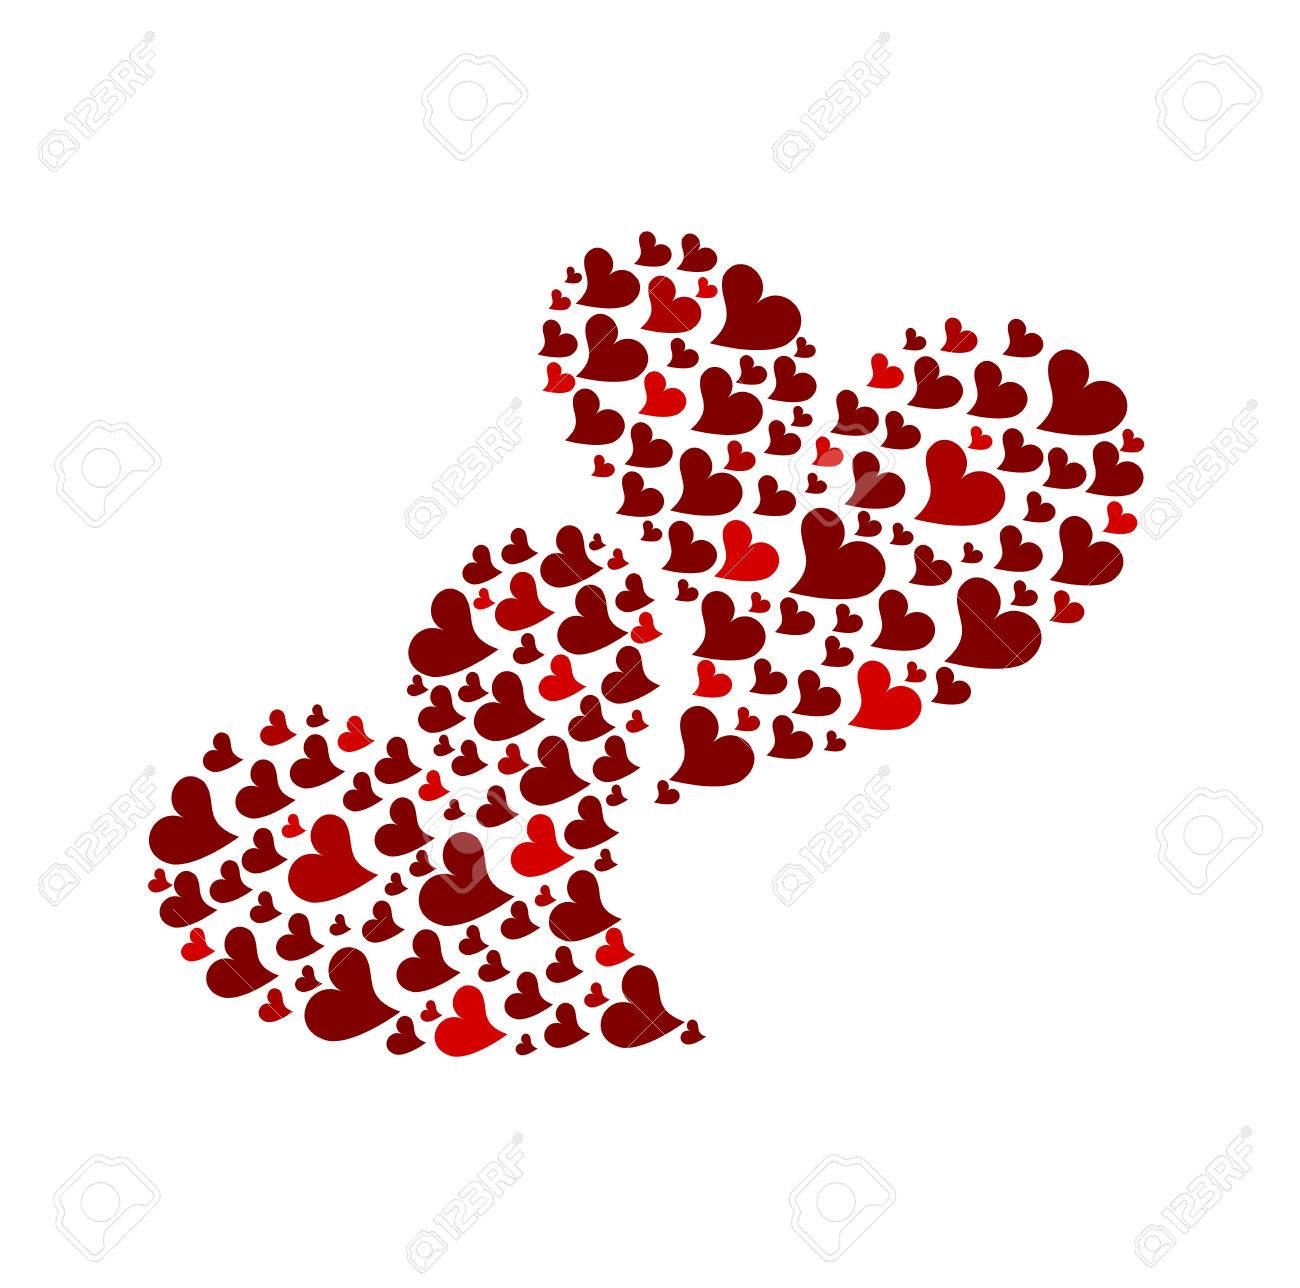 Two red hearts made of small hearts isolated. illustration Stock Vector - 8641556